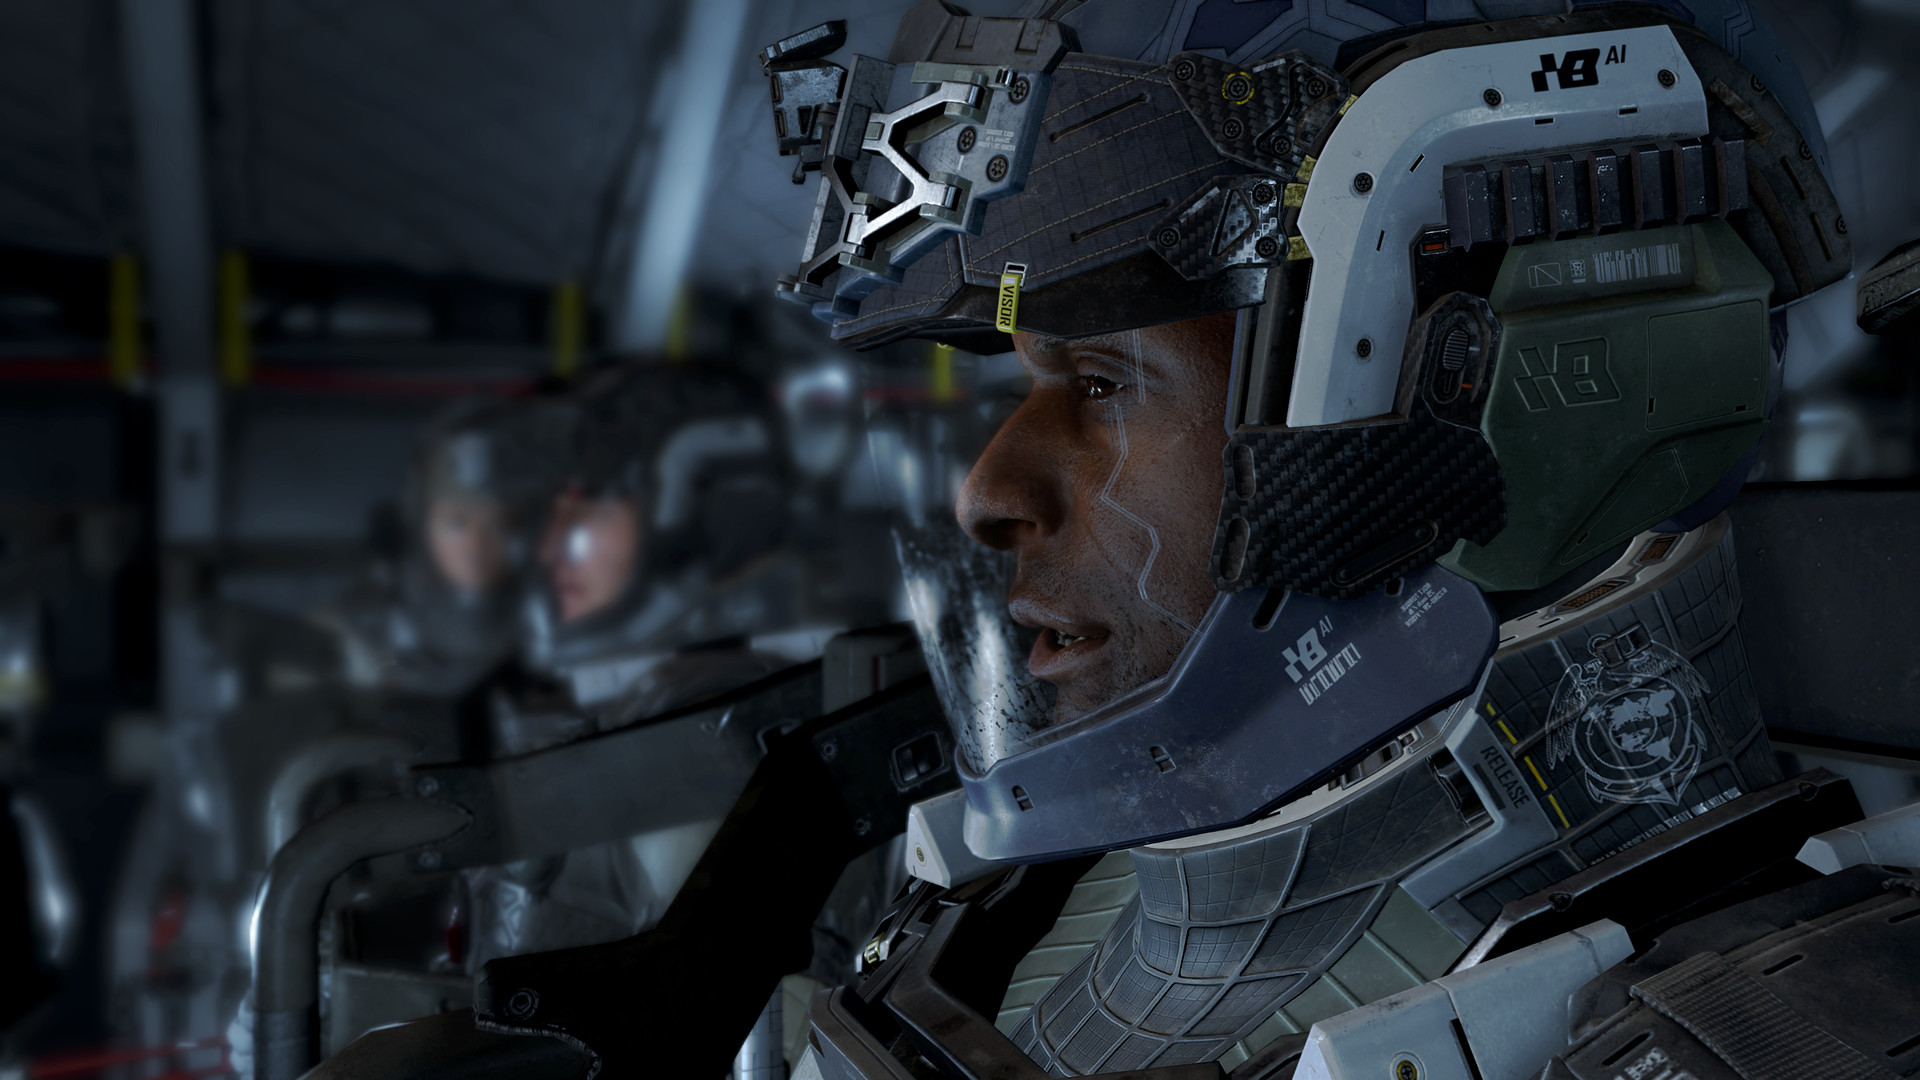 Call of Duty: Infinite Warfare System Requirements - Can I